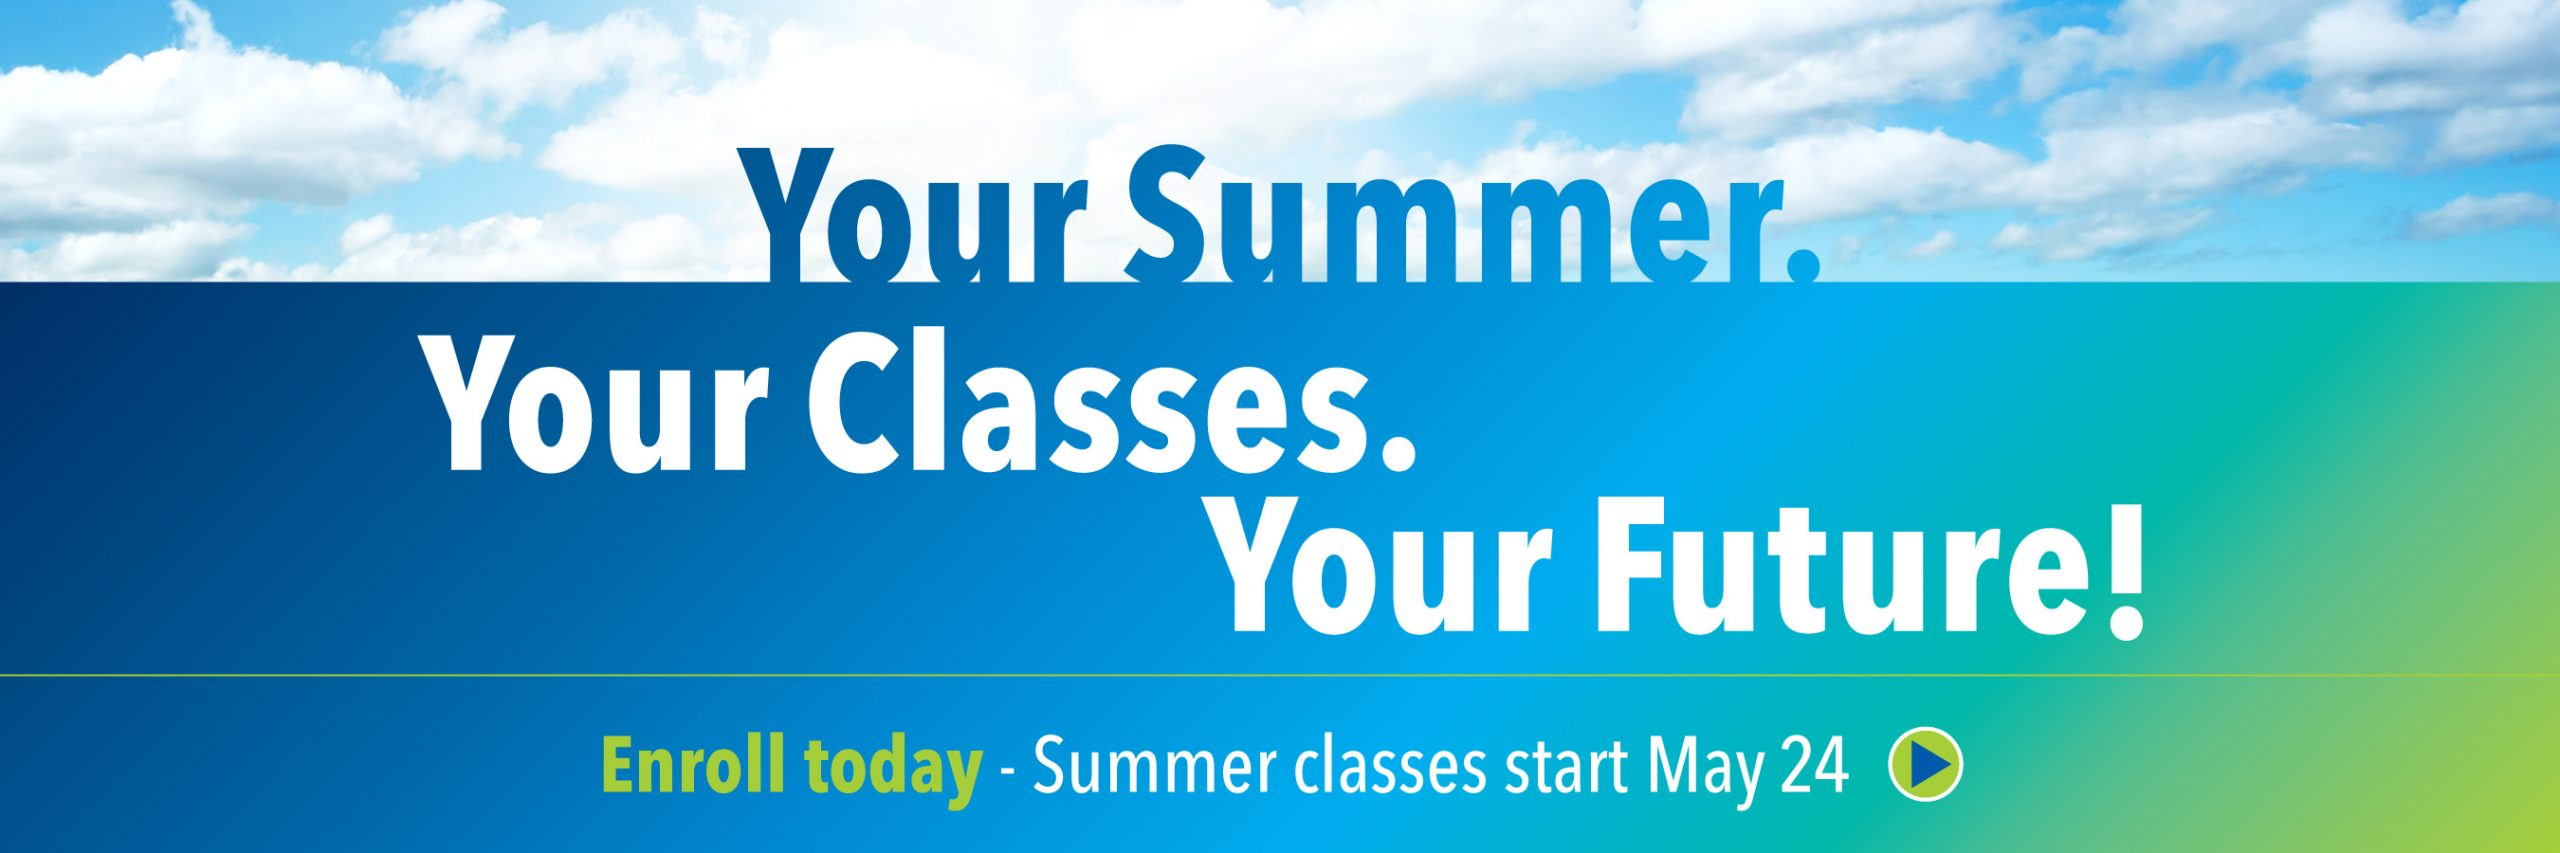 Your summer. Your Classes. Your future! Enroll today. Summer classes start May 24.